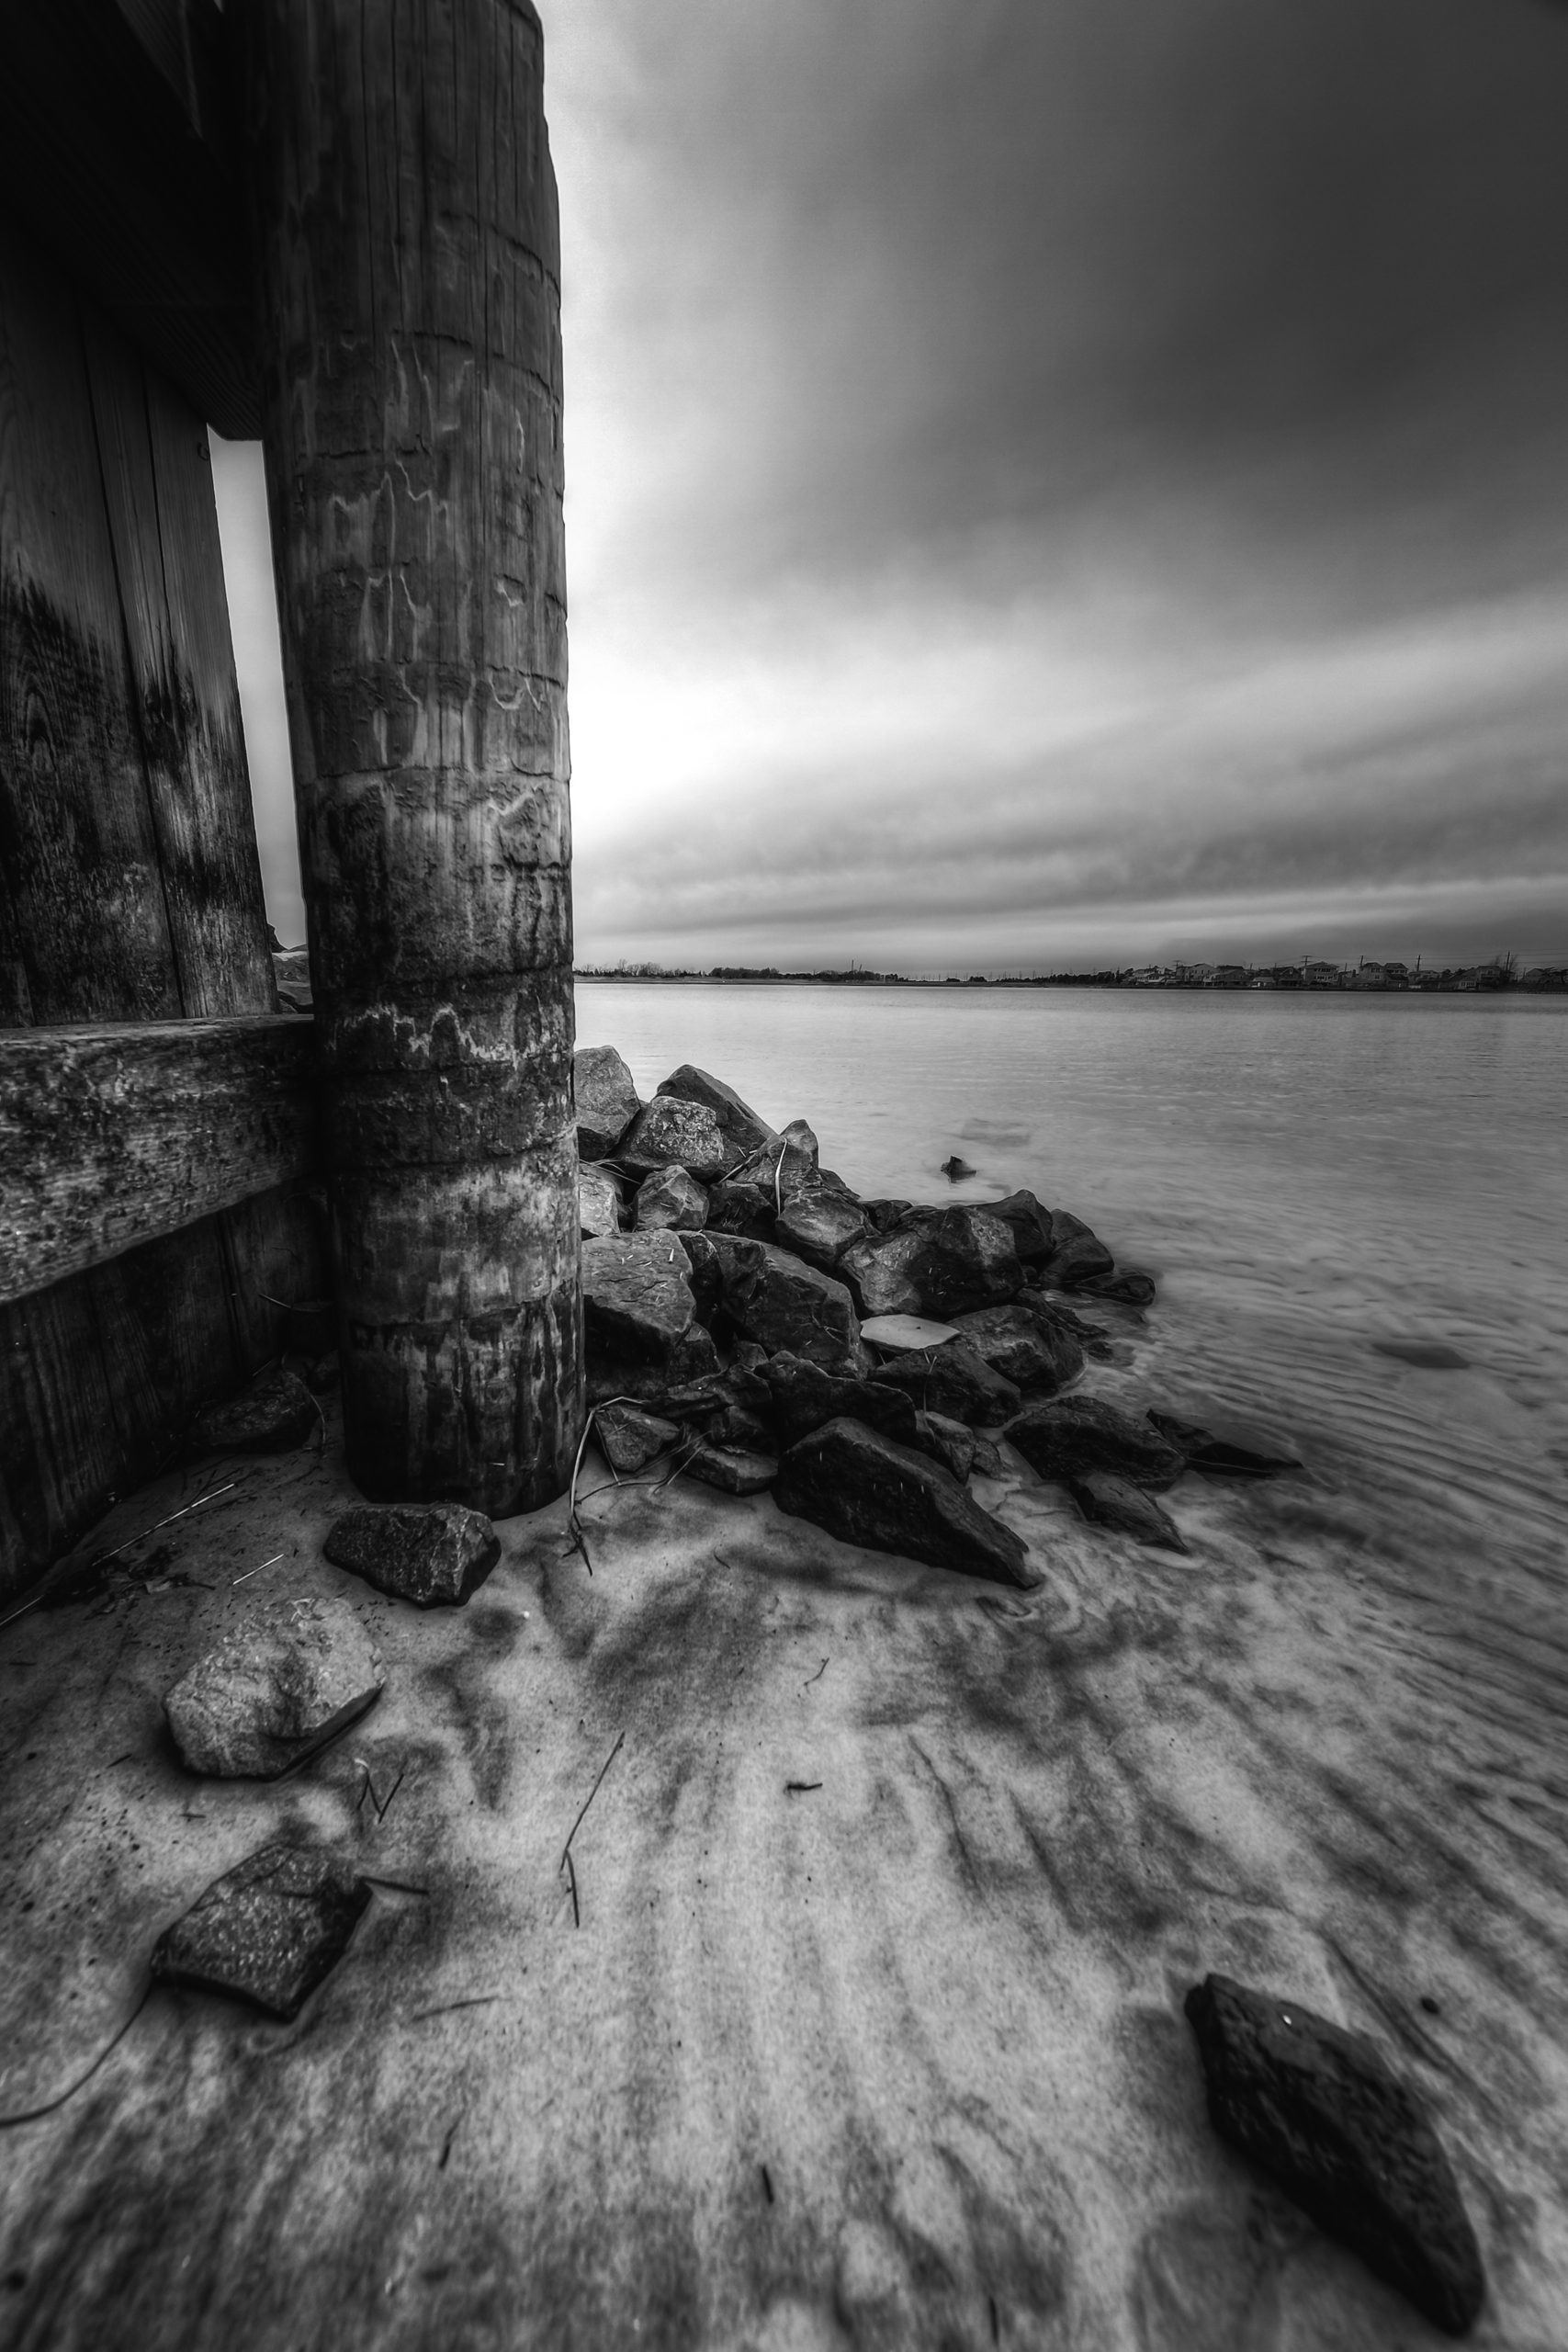 A seven frame black and white composite exposure of a wooden bulkhead and mounded jetty rock